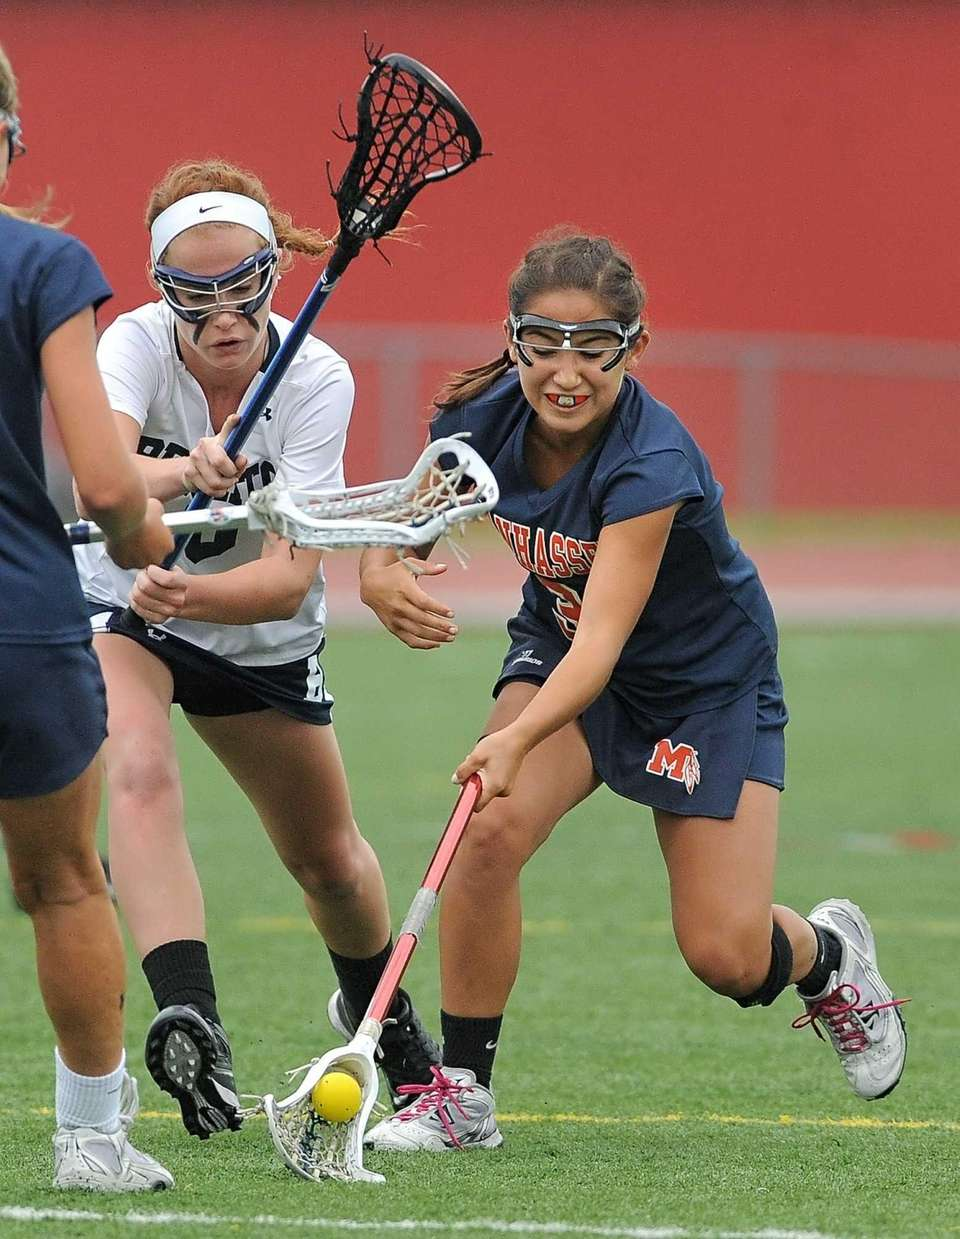 Manhasset's Sarah Barcia, right, scoops up a loose